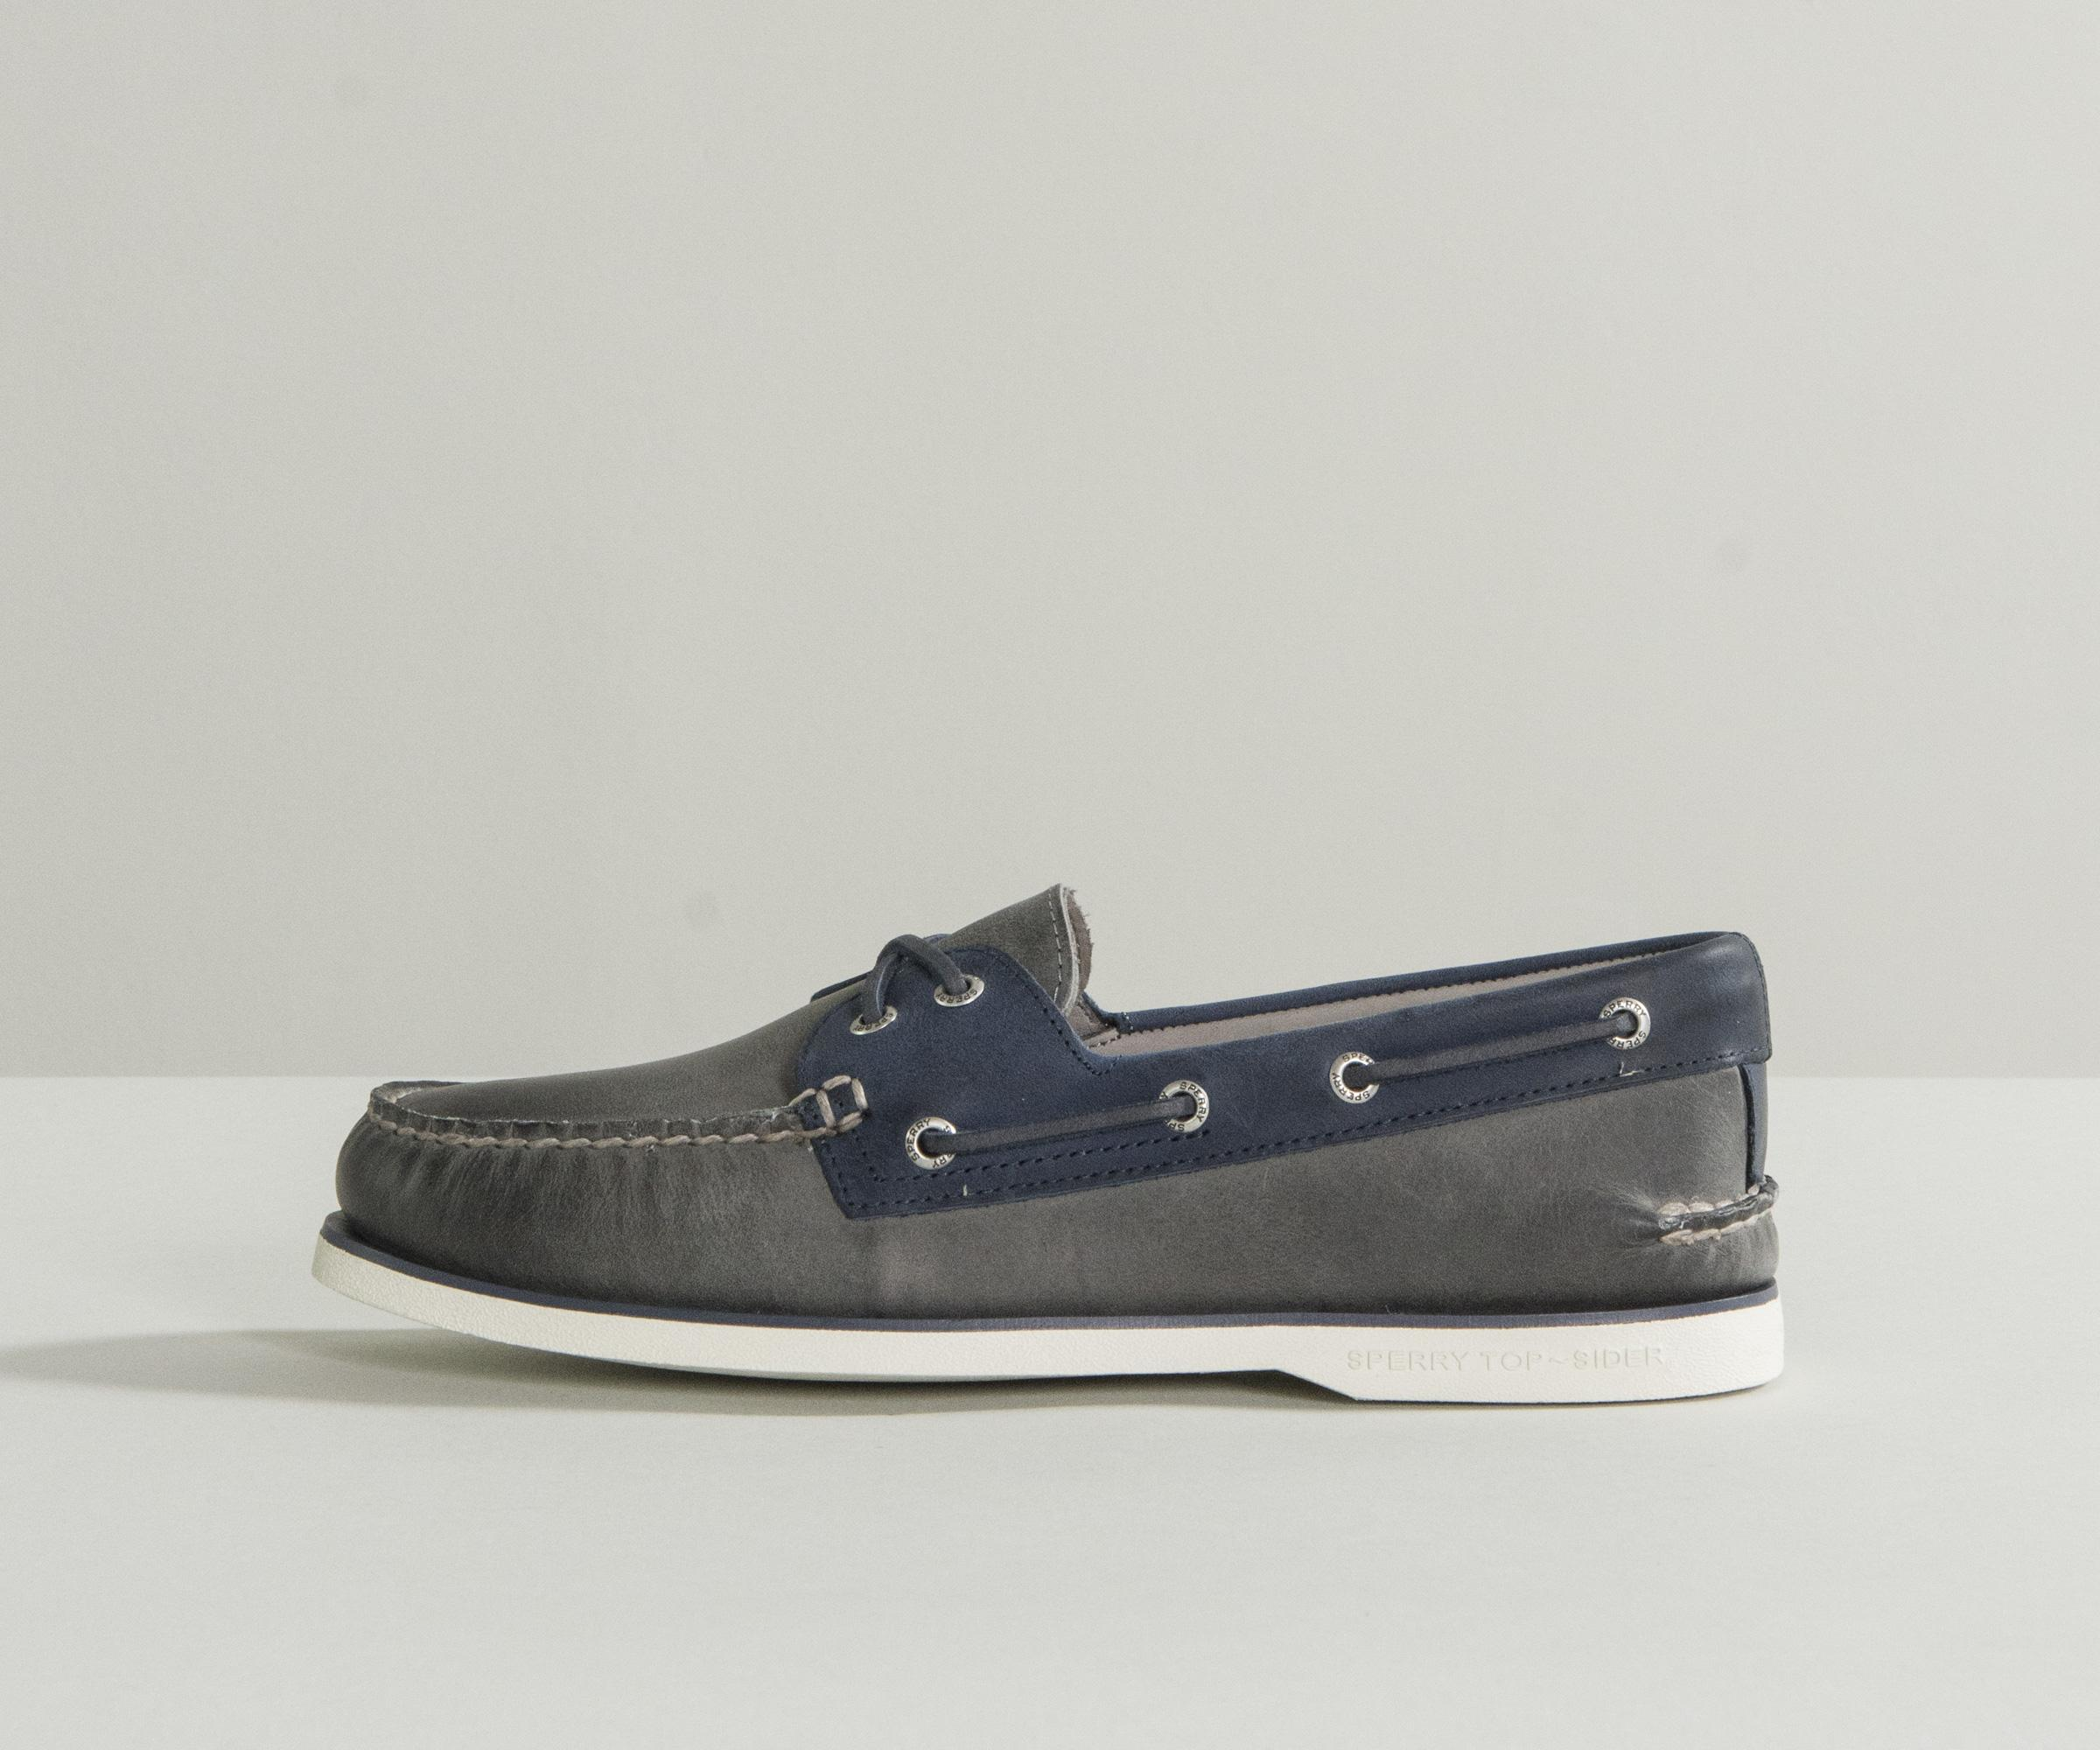 e07abfdfda4 Lyst - Sperry Top-Sider  gold Cup  Luxury Deck Shoe Grey navy in ...